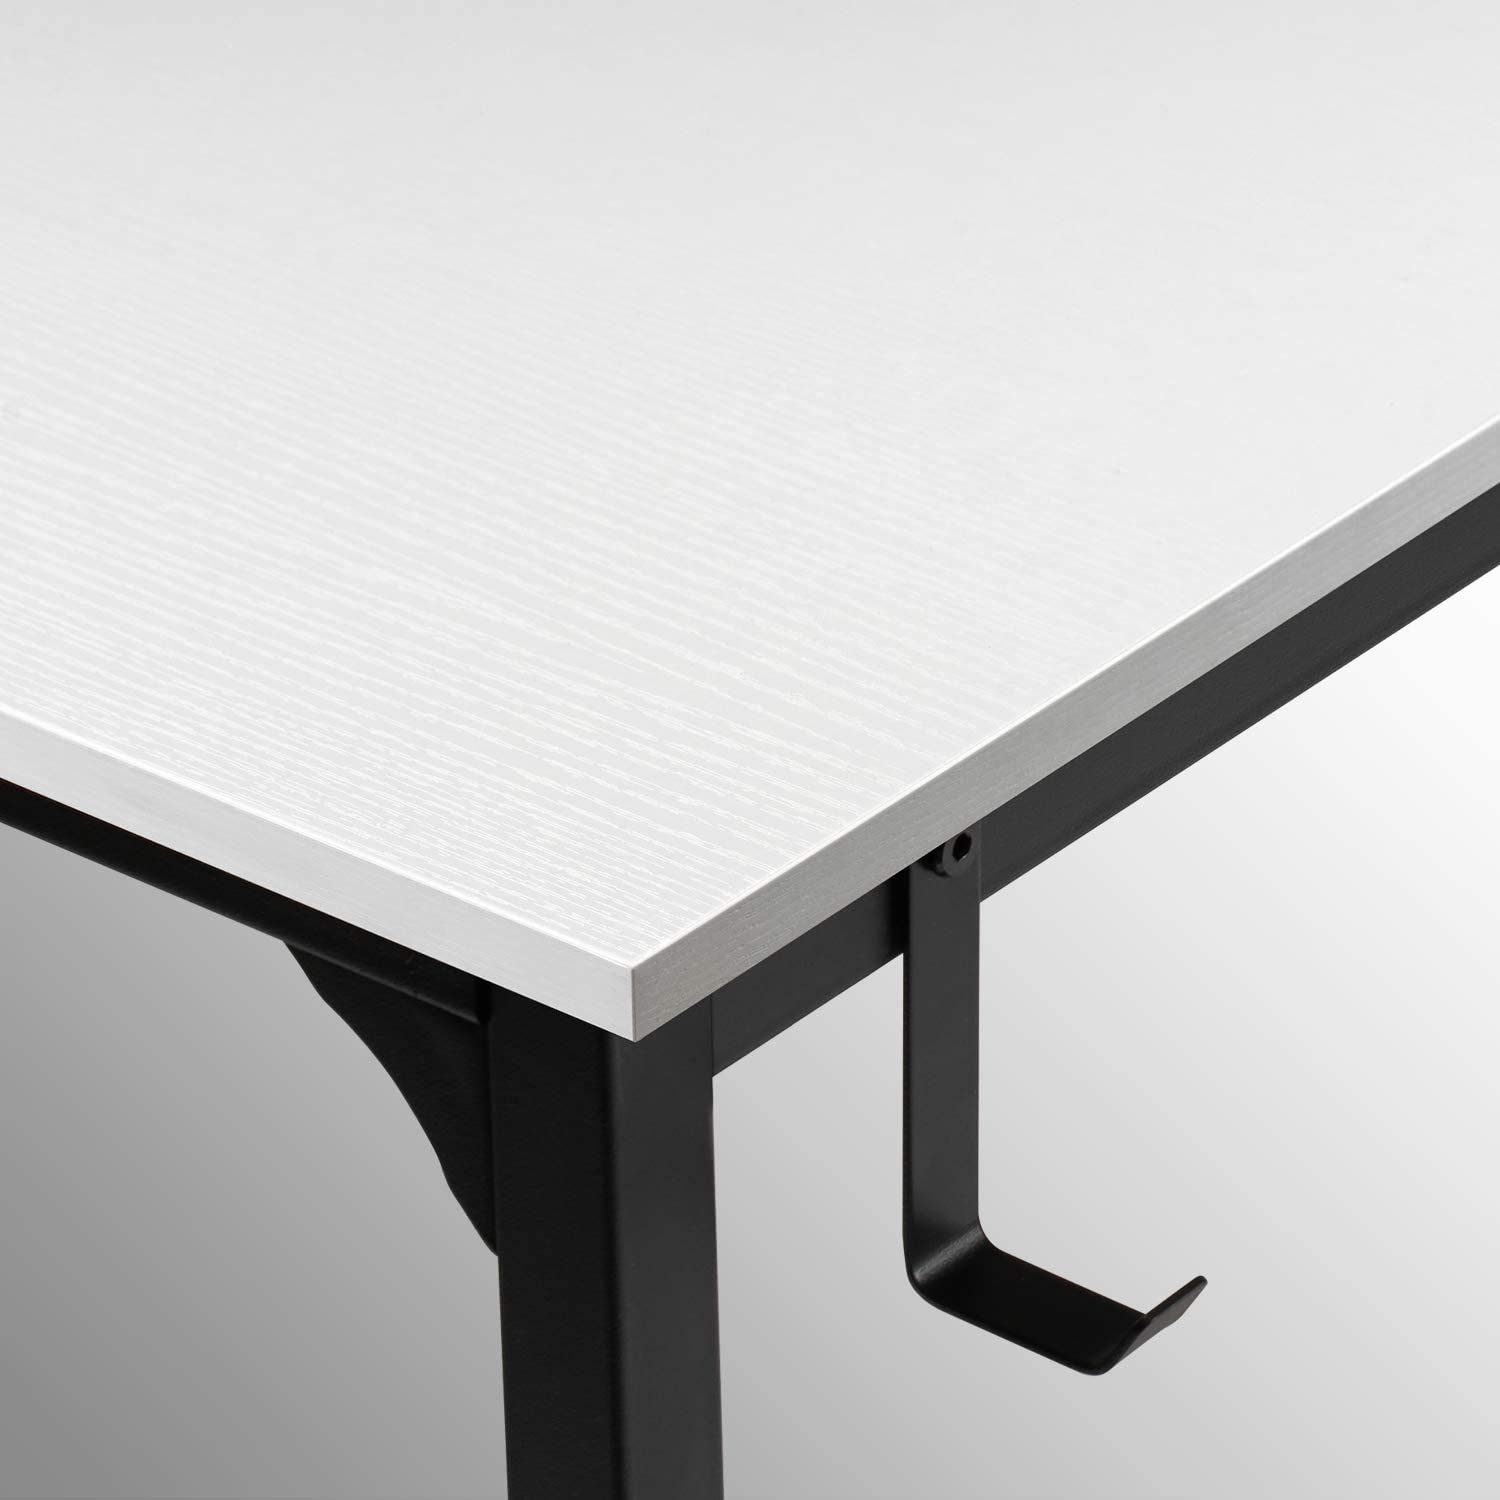 Modern Simple Style PC Desk CubiCubi Computer Desk 40 Study Writing Table for Home Office Black Metal Frame White